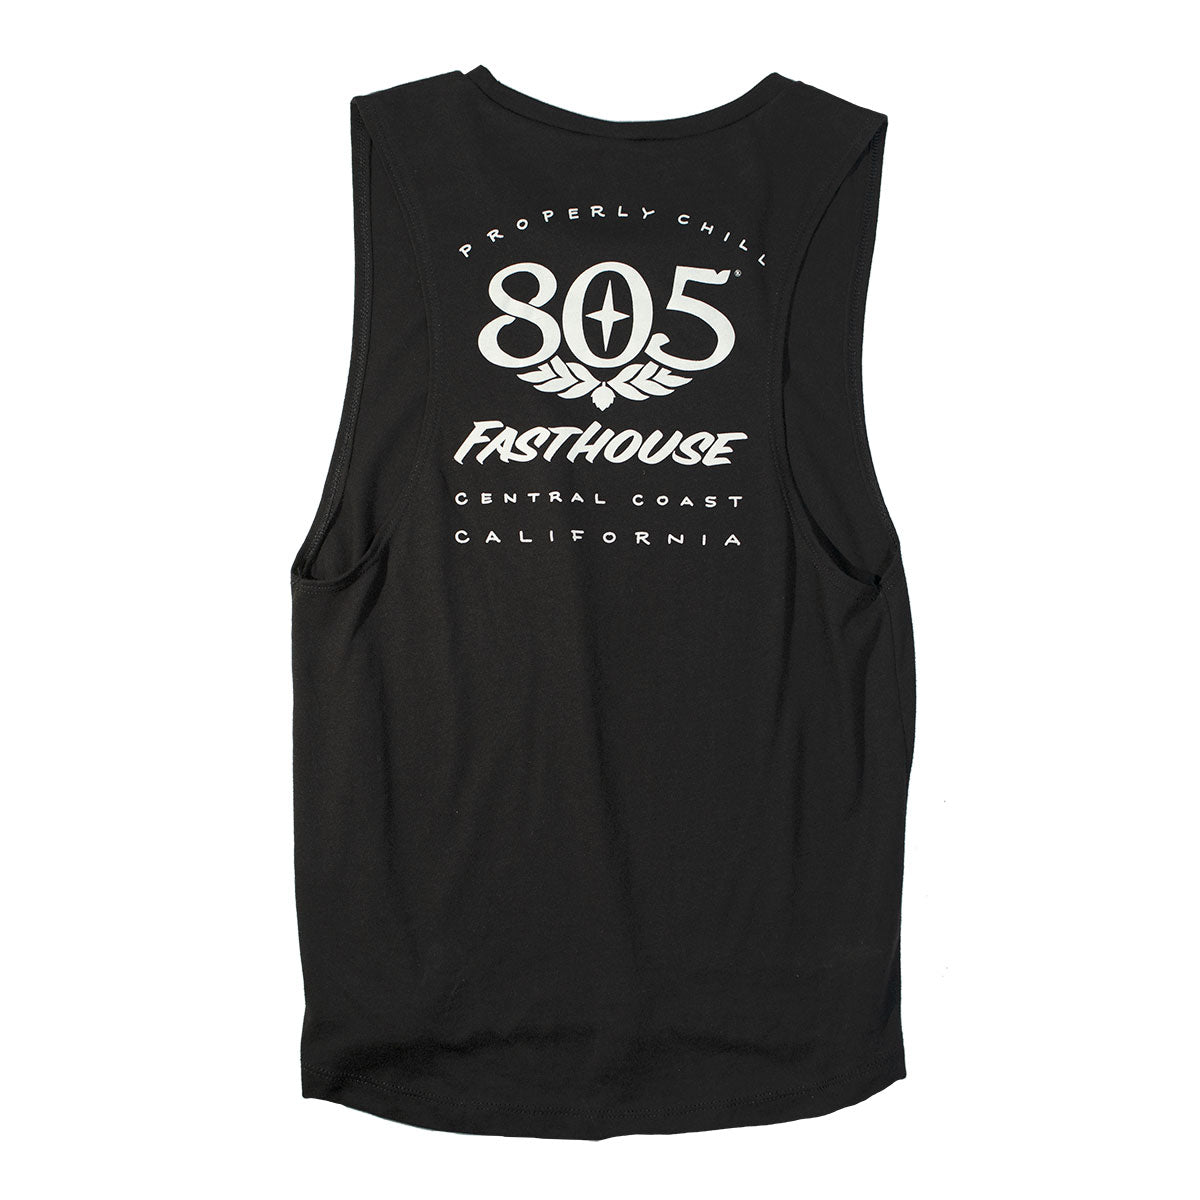 Fasthouse - 805 Prime Womens Muscle Tank - Black